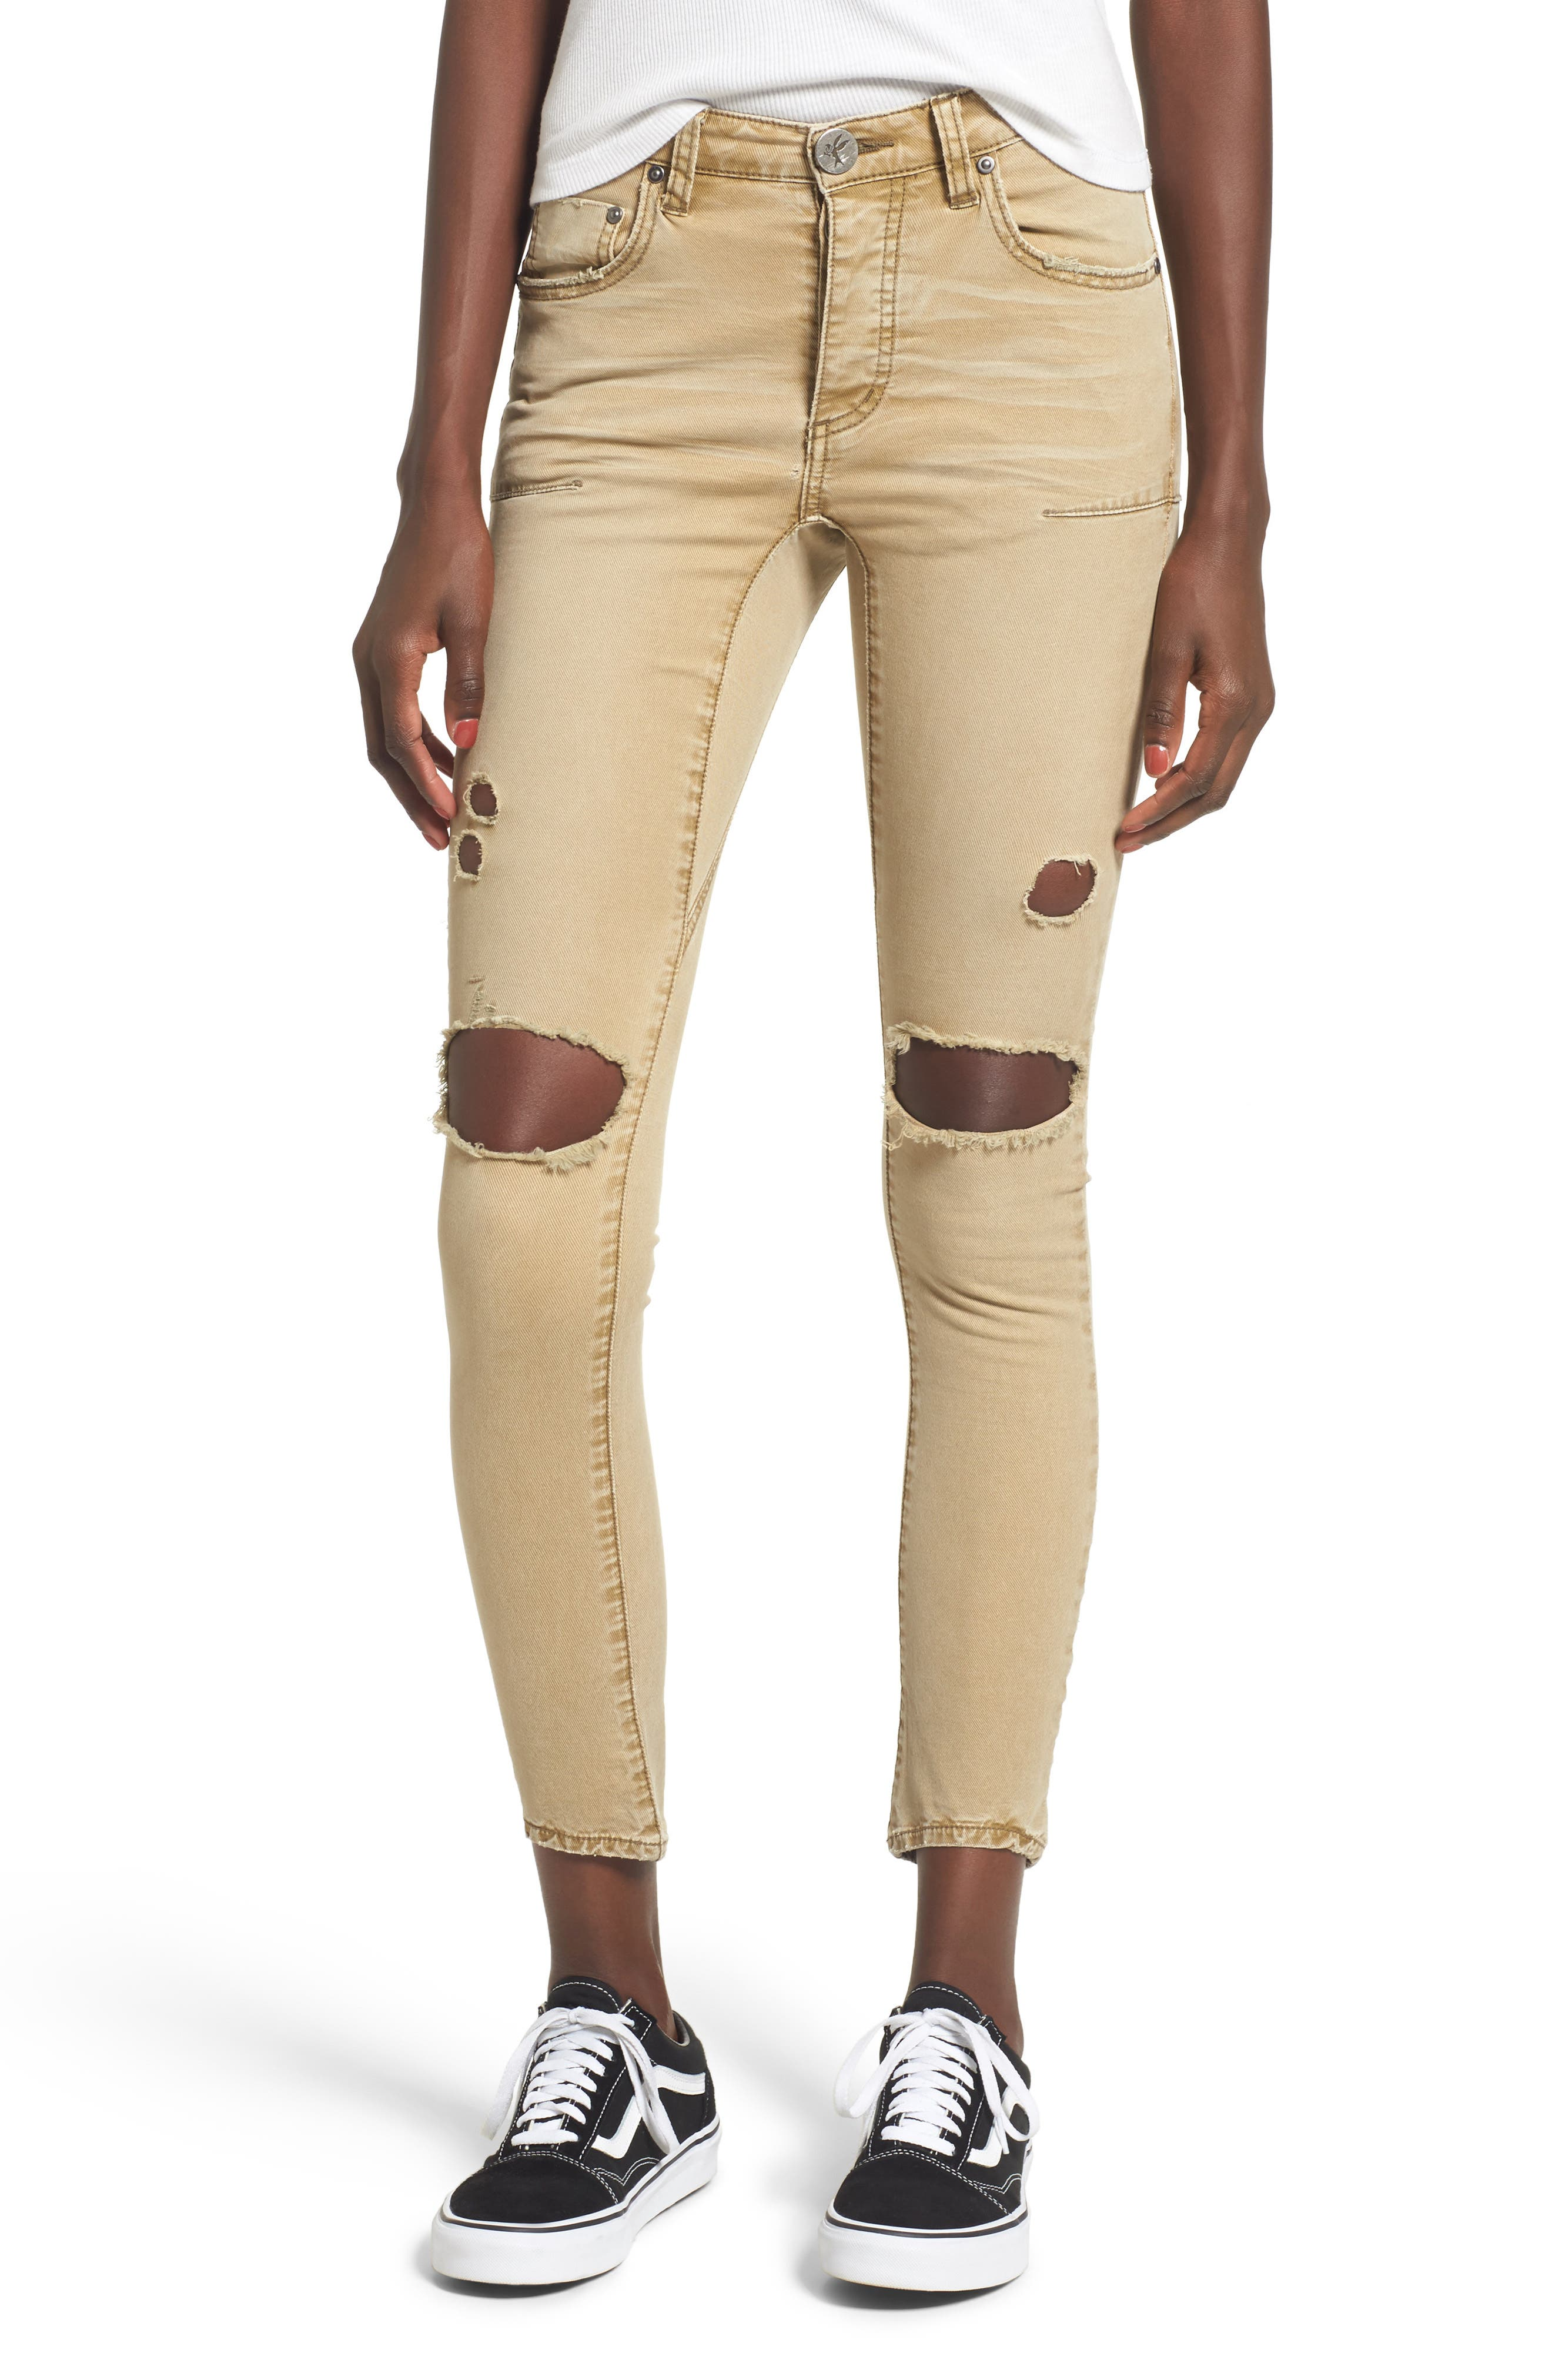 Freebirds Ripped Low Waist Skinny Jeans,                         Main,                         color, 250